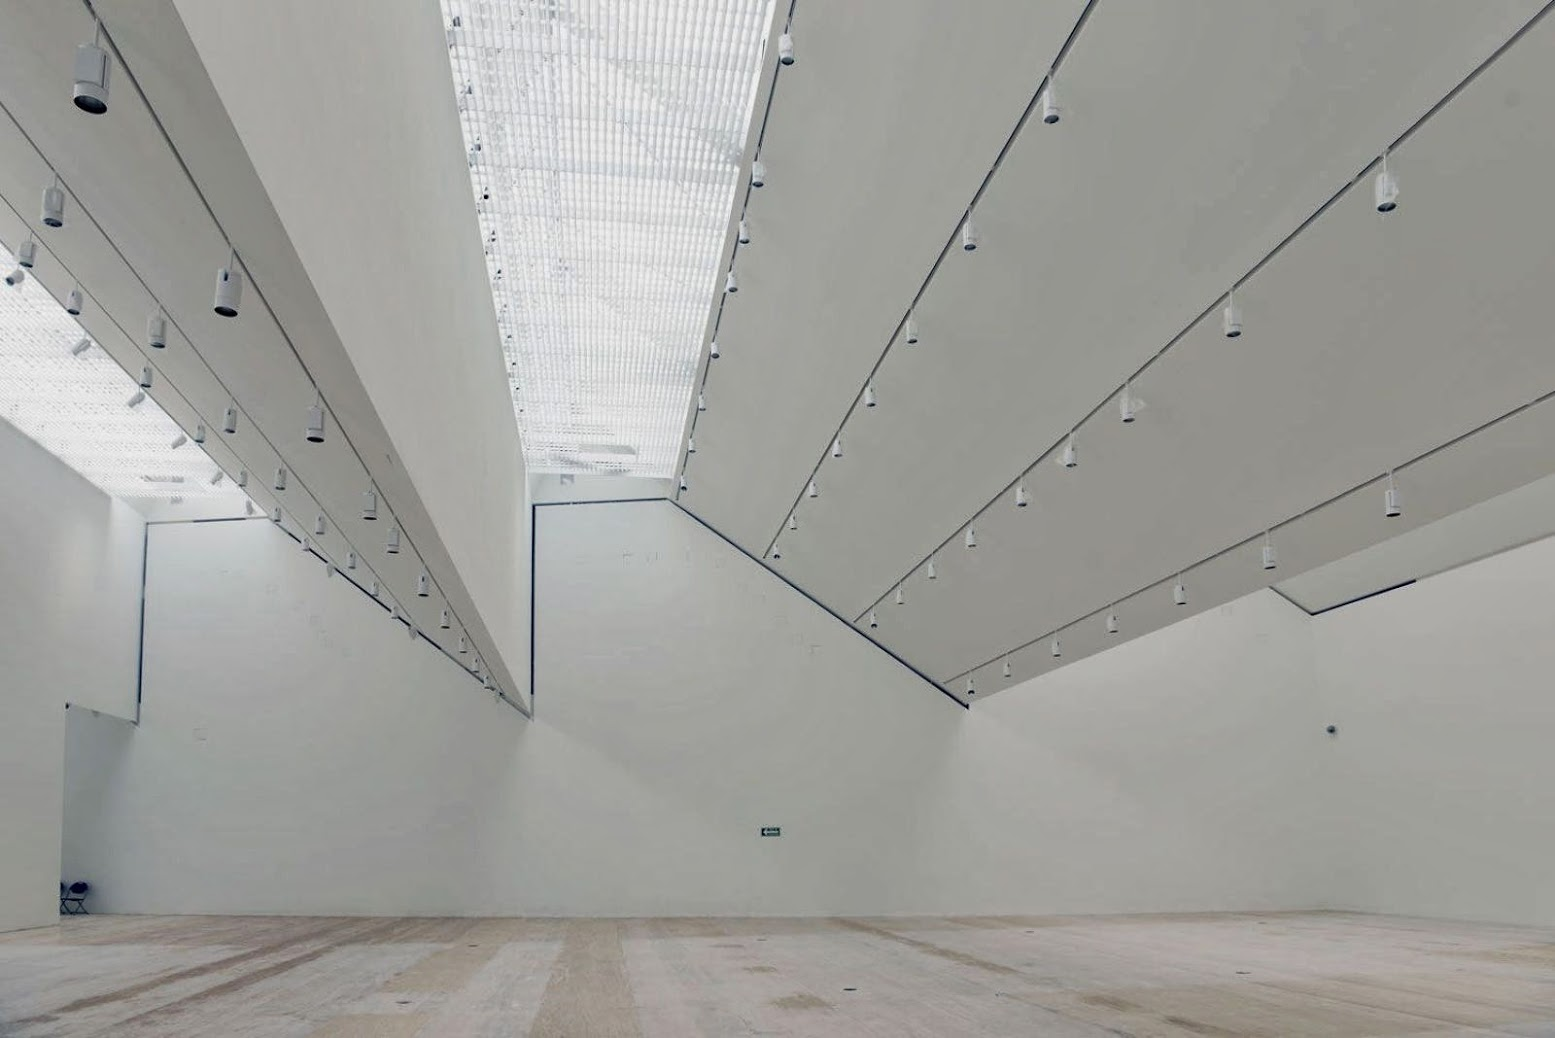 Museo Jumex by David Chipperfield Architects